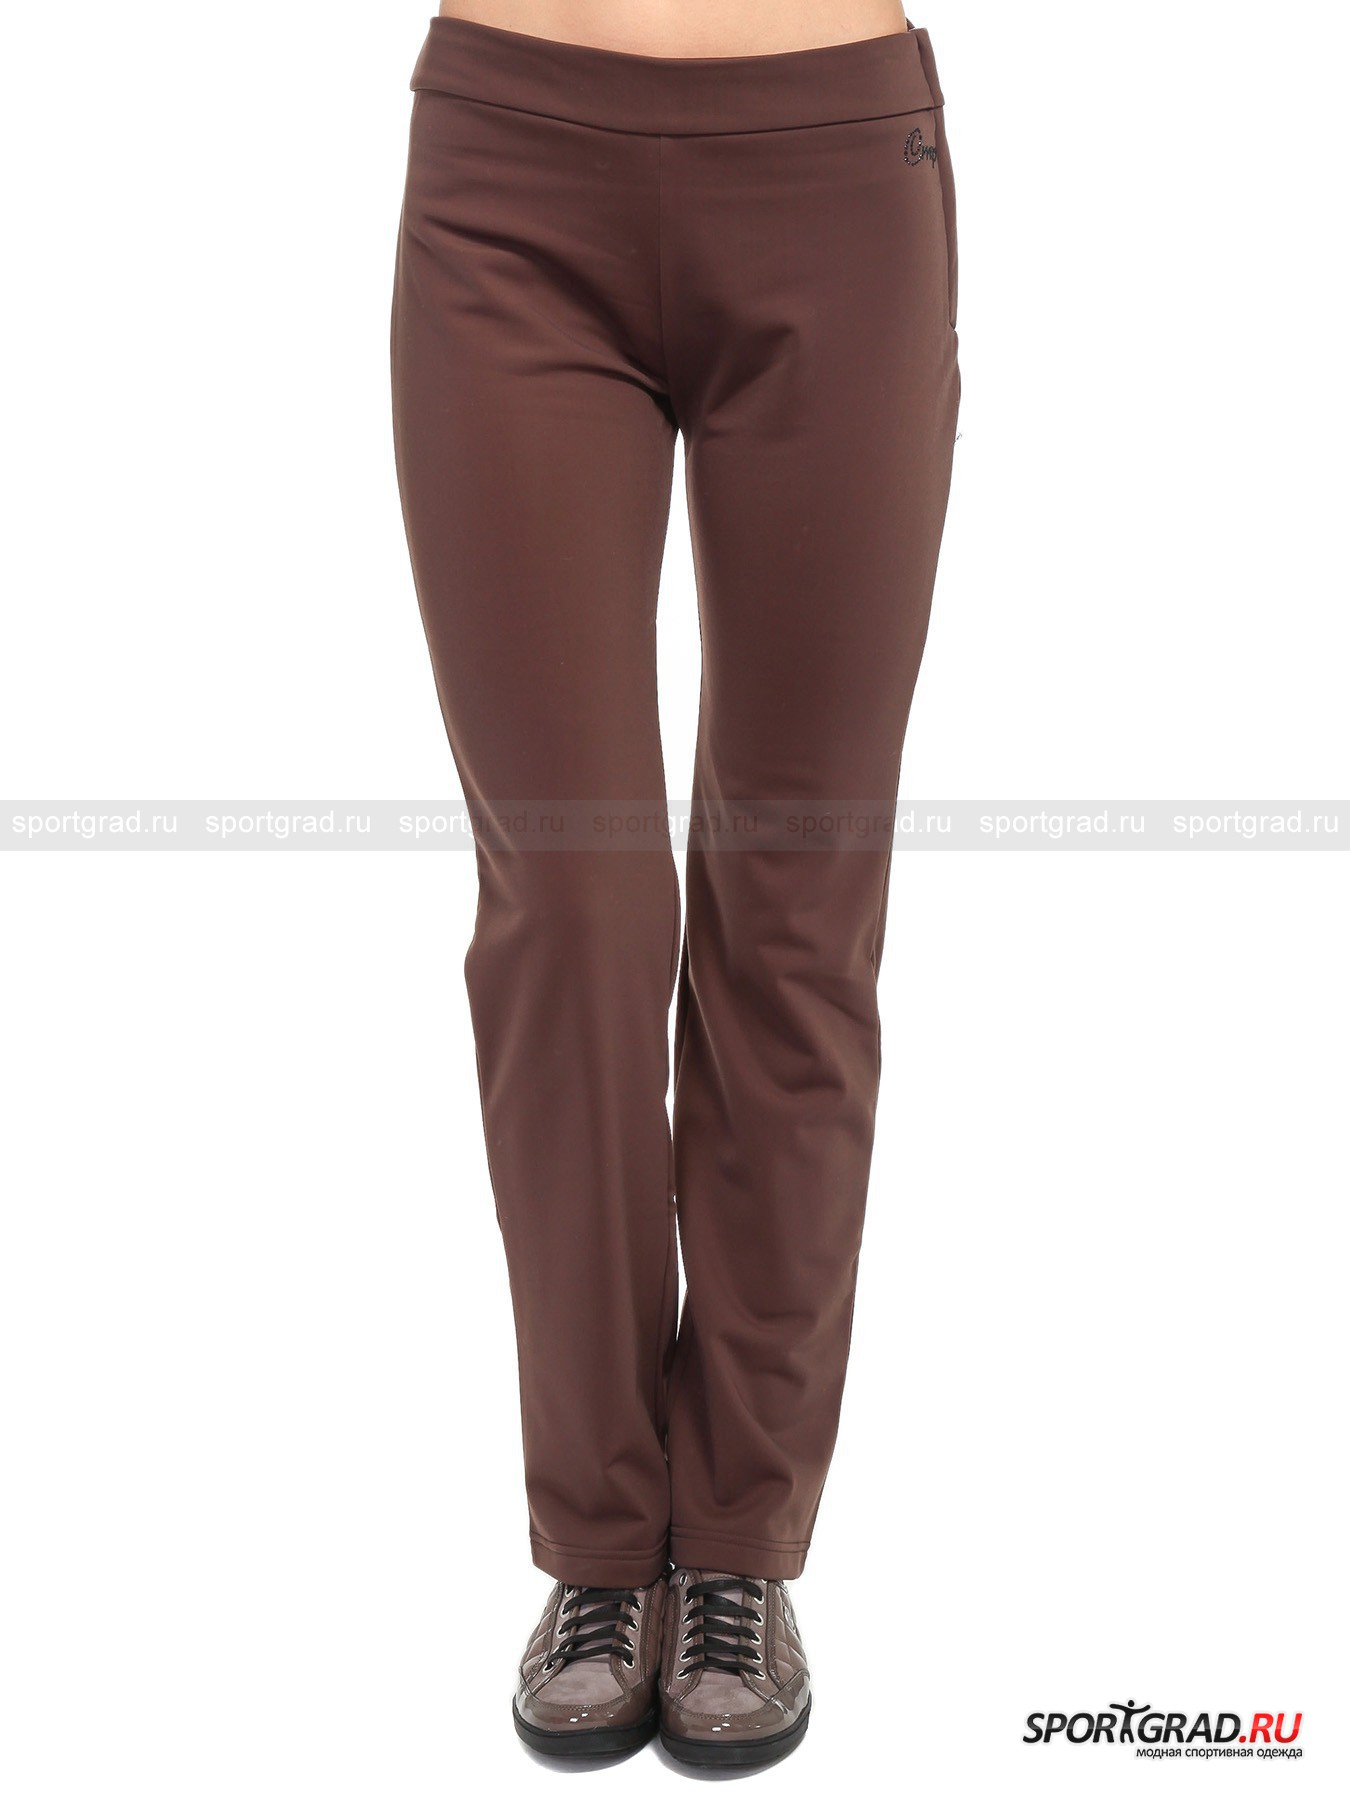 ����� ������� ���������� WOMAN PANT CAMPAGNOLO � �������